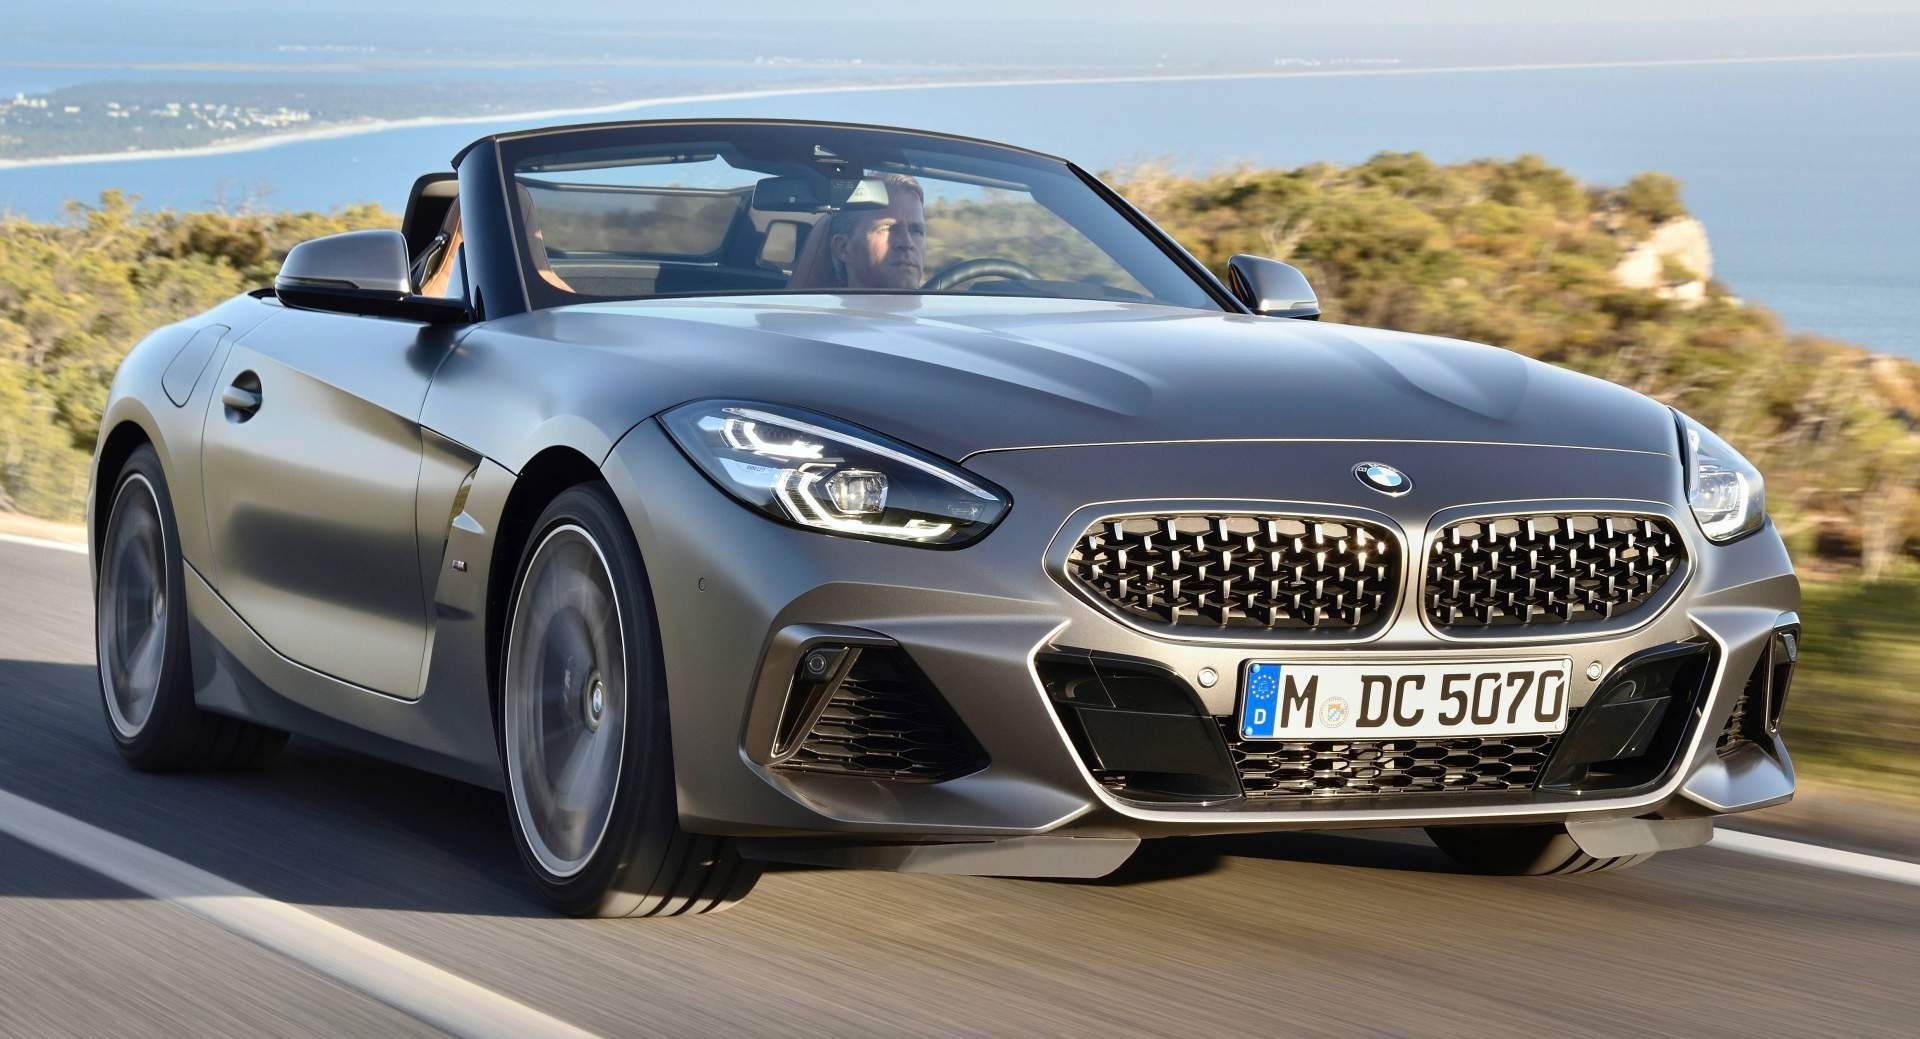 Get A Look At The 2019 Bmw Z4 M40i From Every Angle In 121 Photos Carscoops Bmw Z4 Bmw Bmw Z4 Coupé